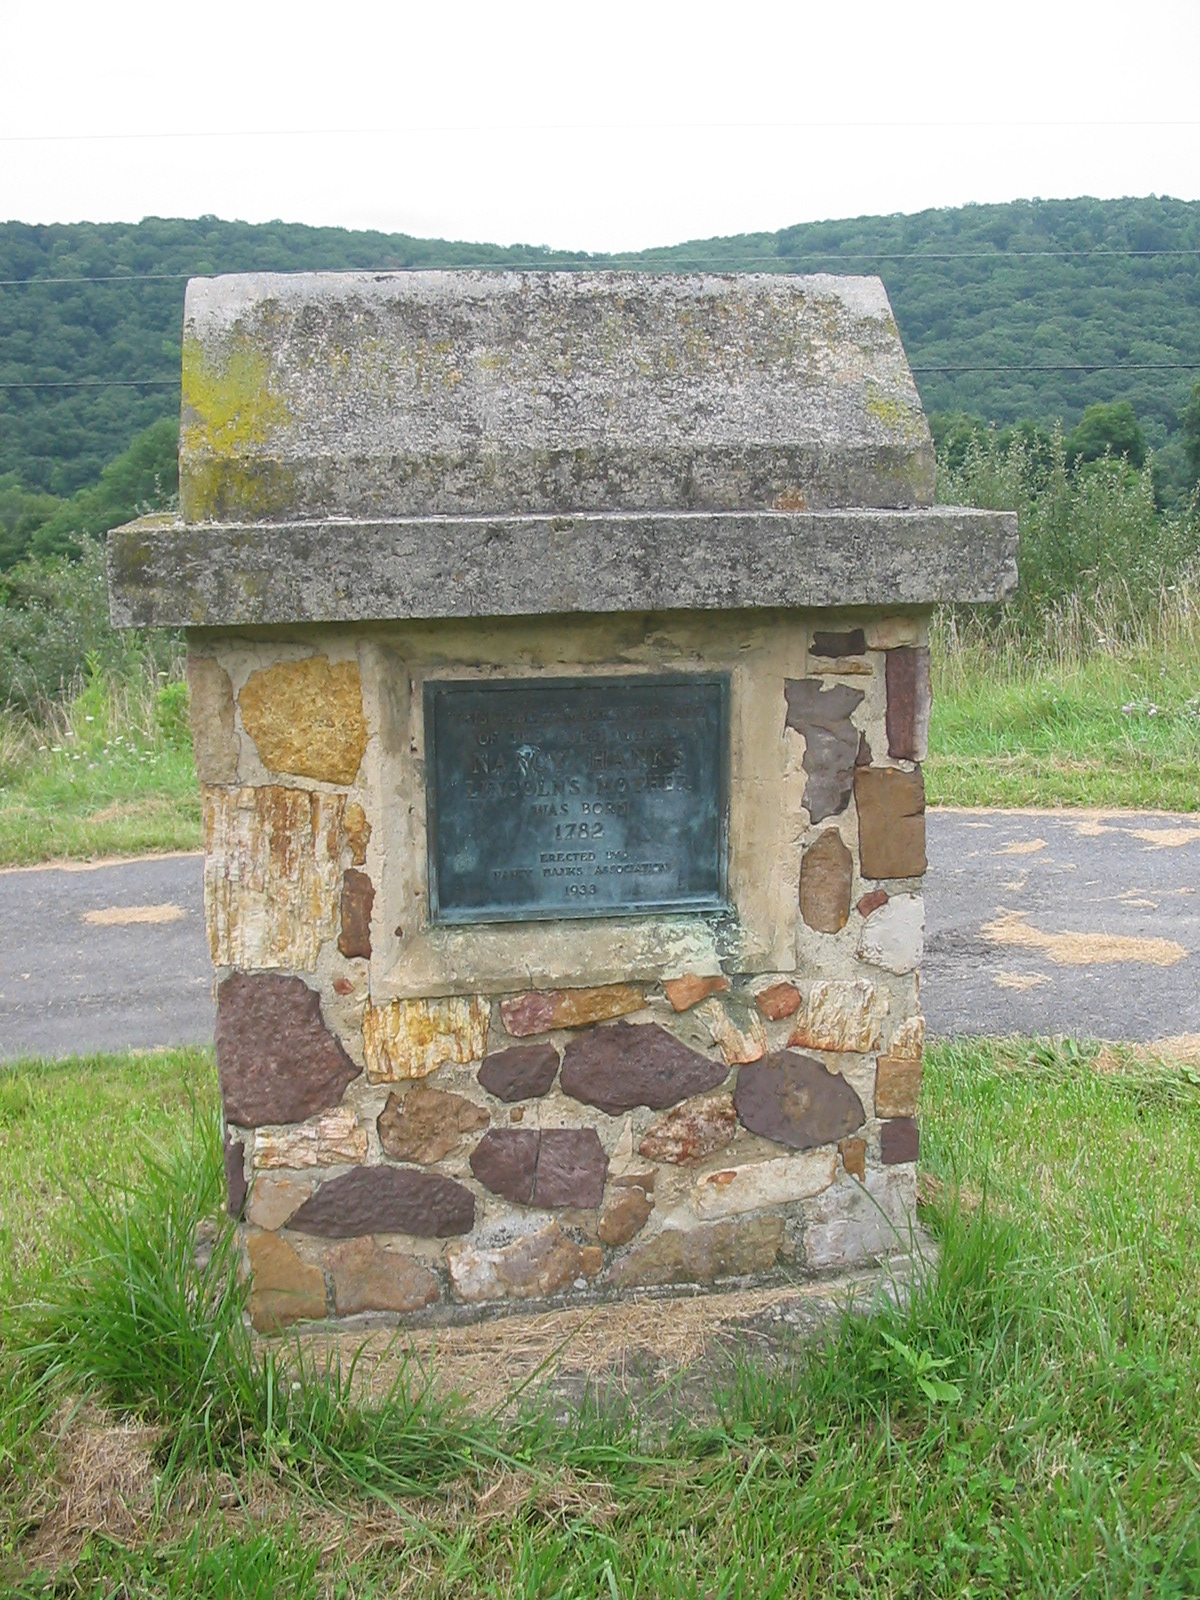 This stone monument and plaque were erected in 1933 designating the site as the birthplace of Nancy Hanks Lincoln. Image obtained from Ser Amantio di Nicolao, Wikipedia.